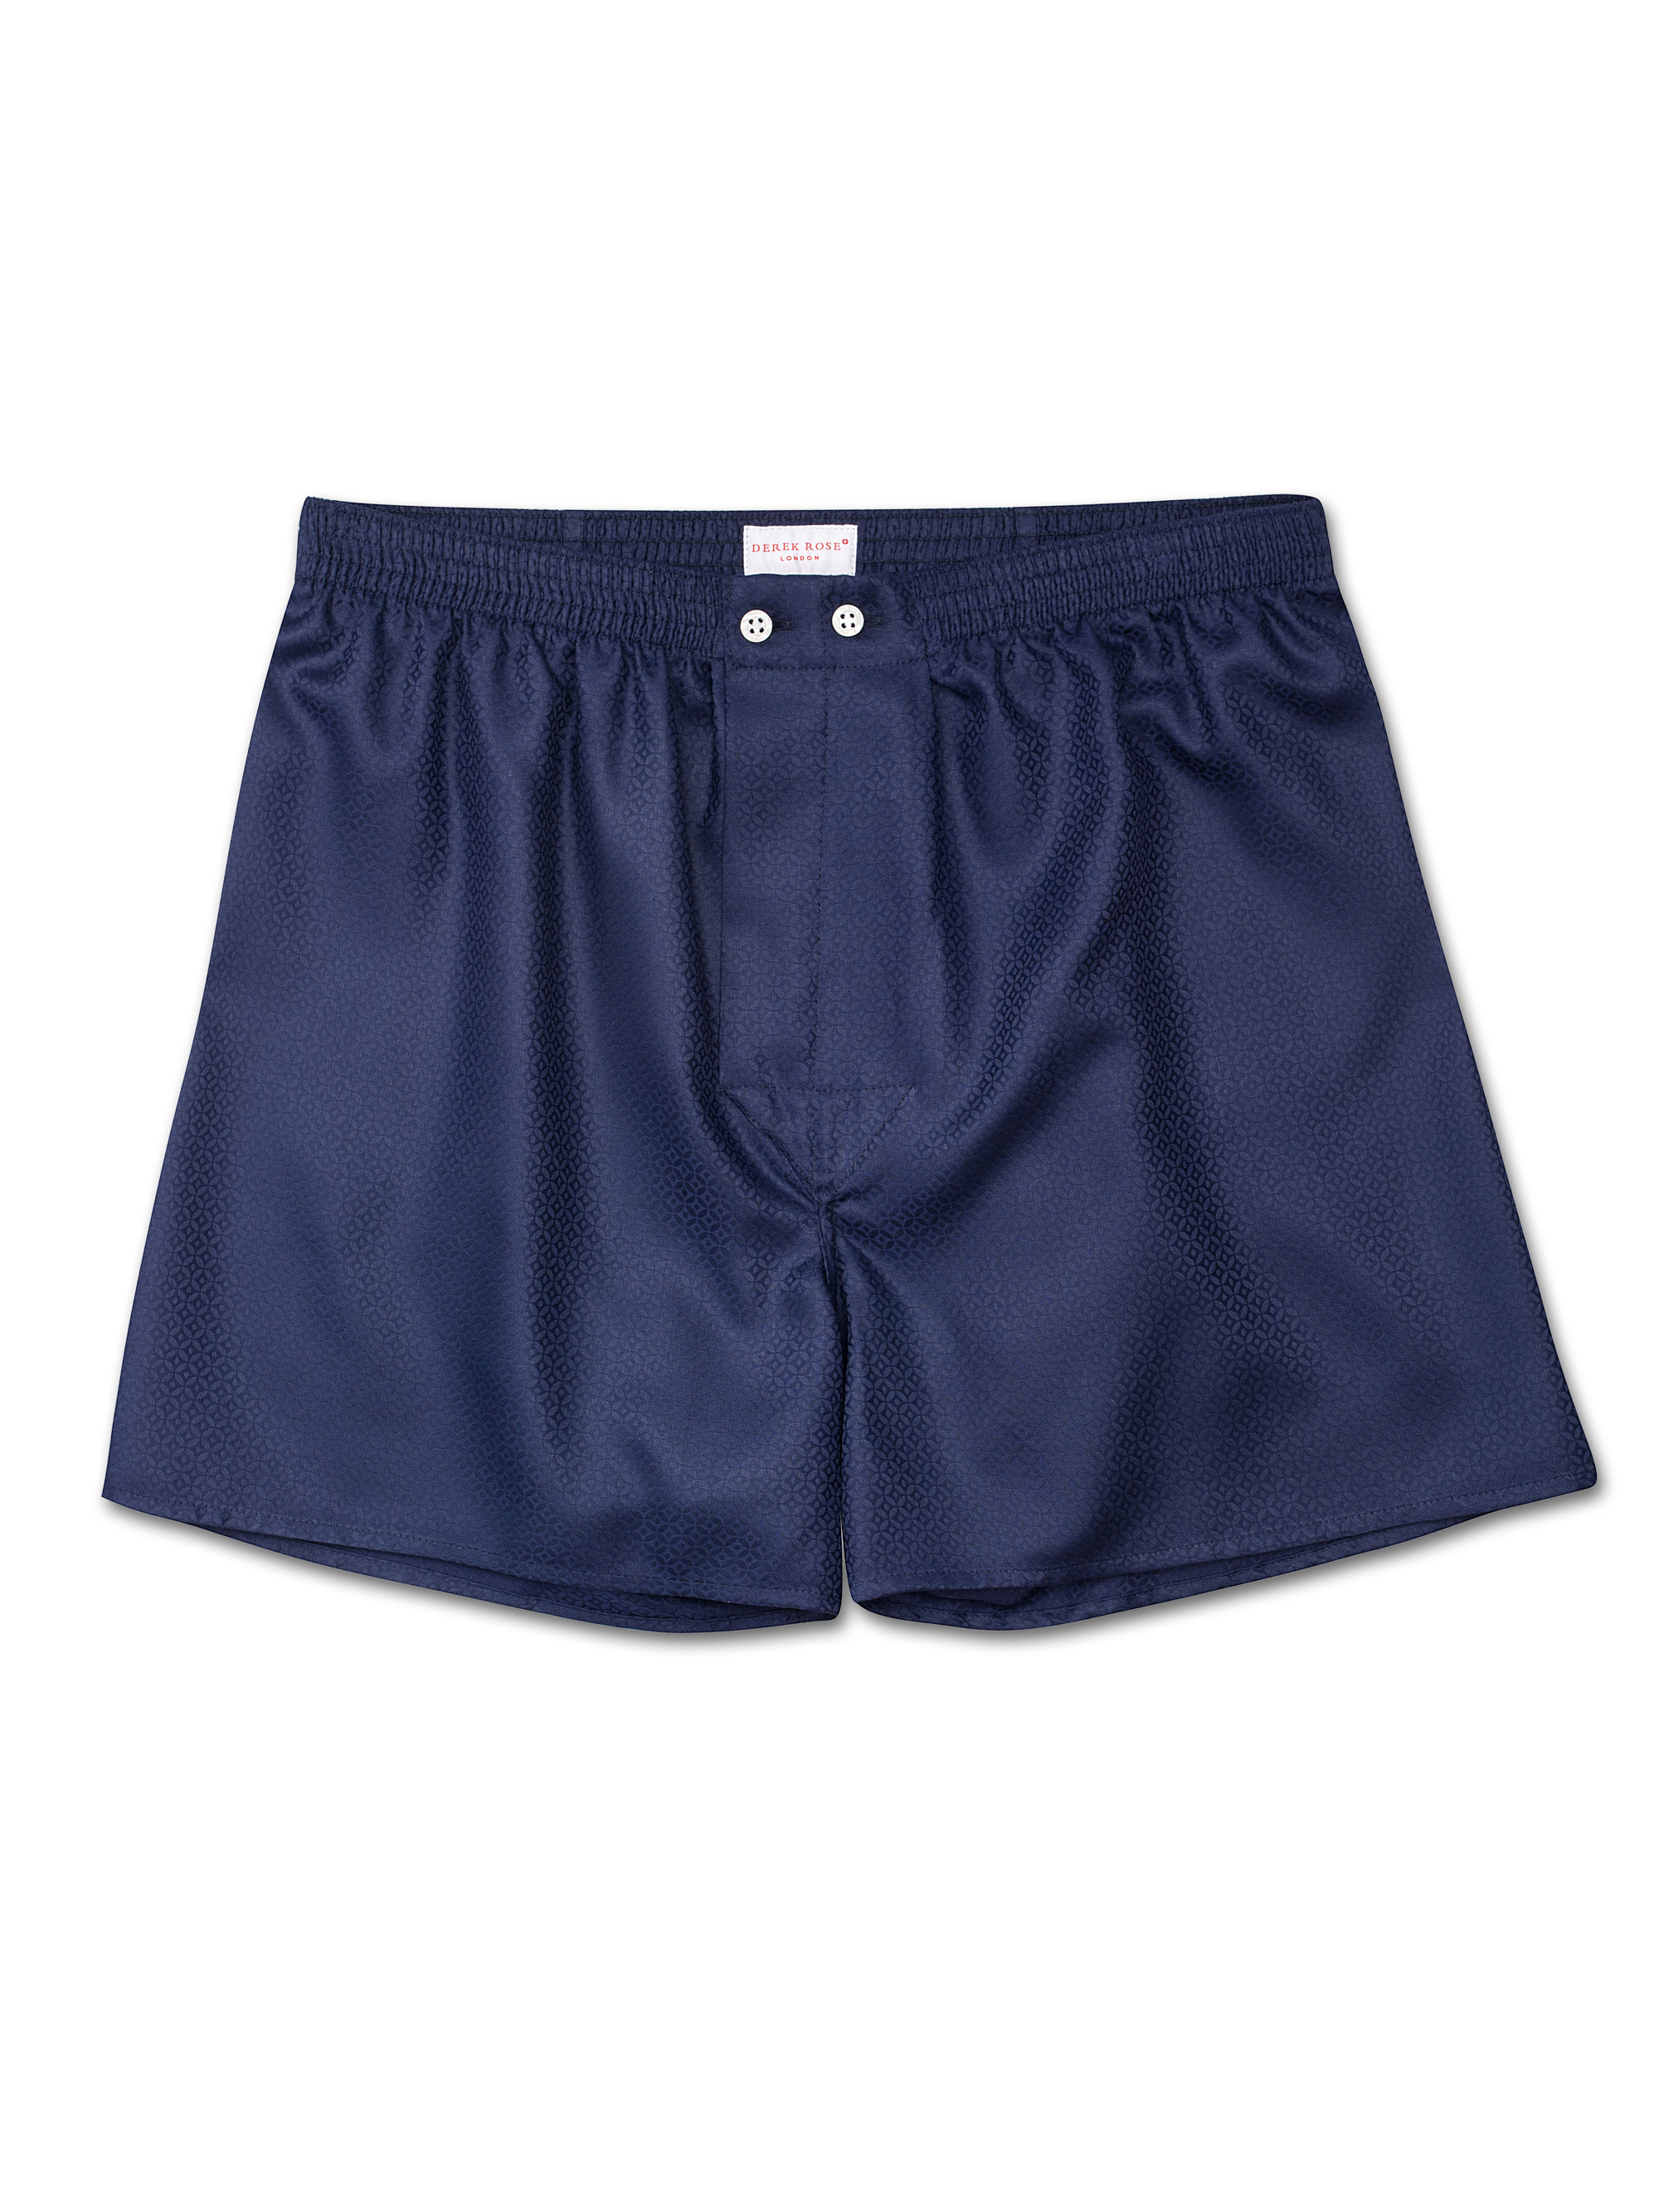 Couple cotton sleeping shorts boxers COLOUR his hers